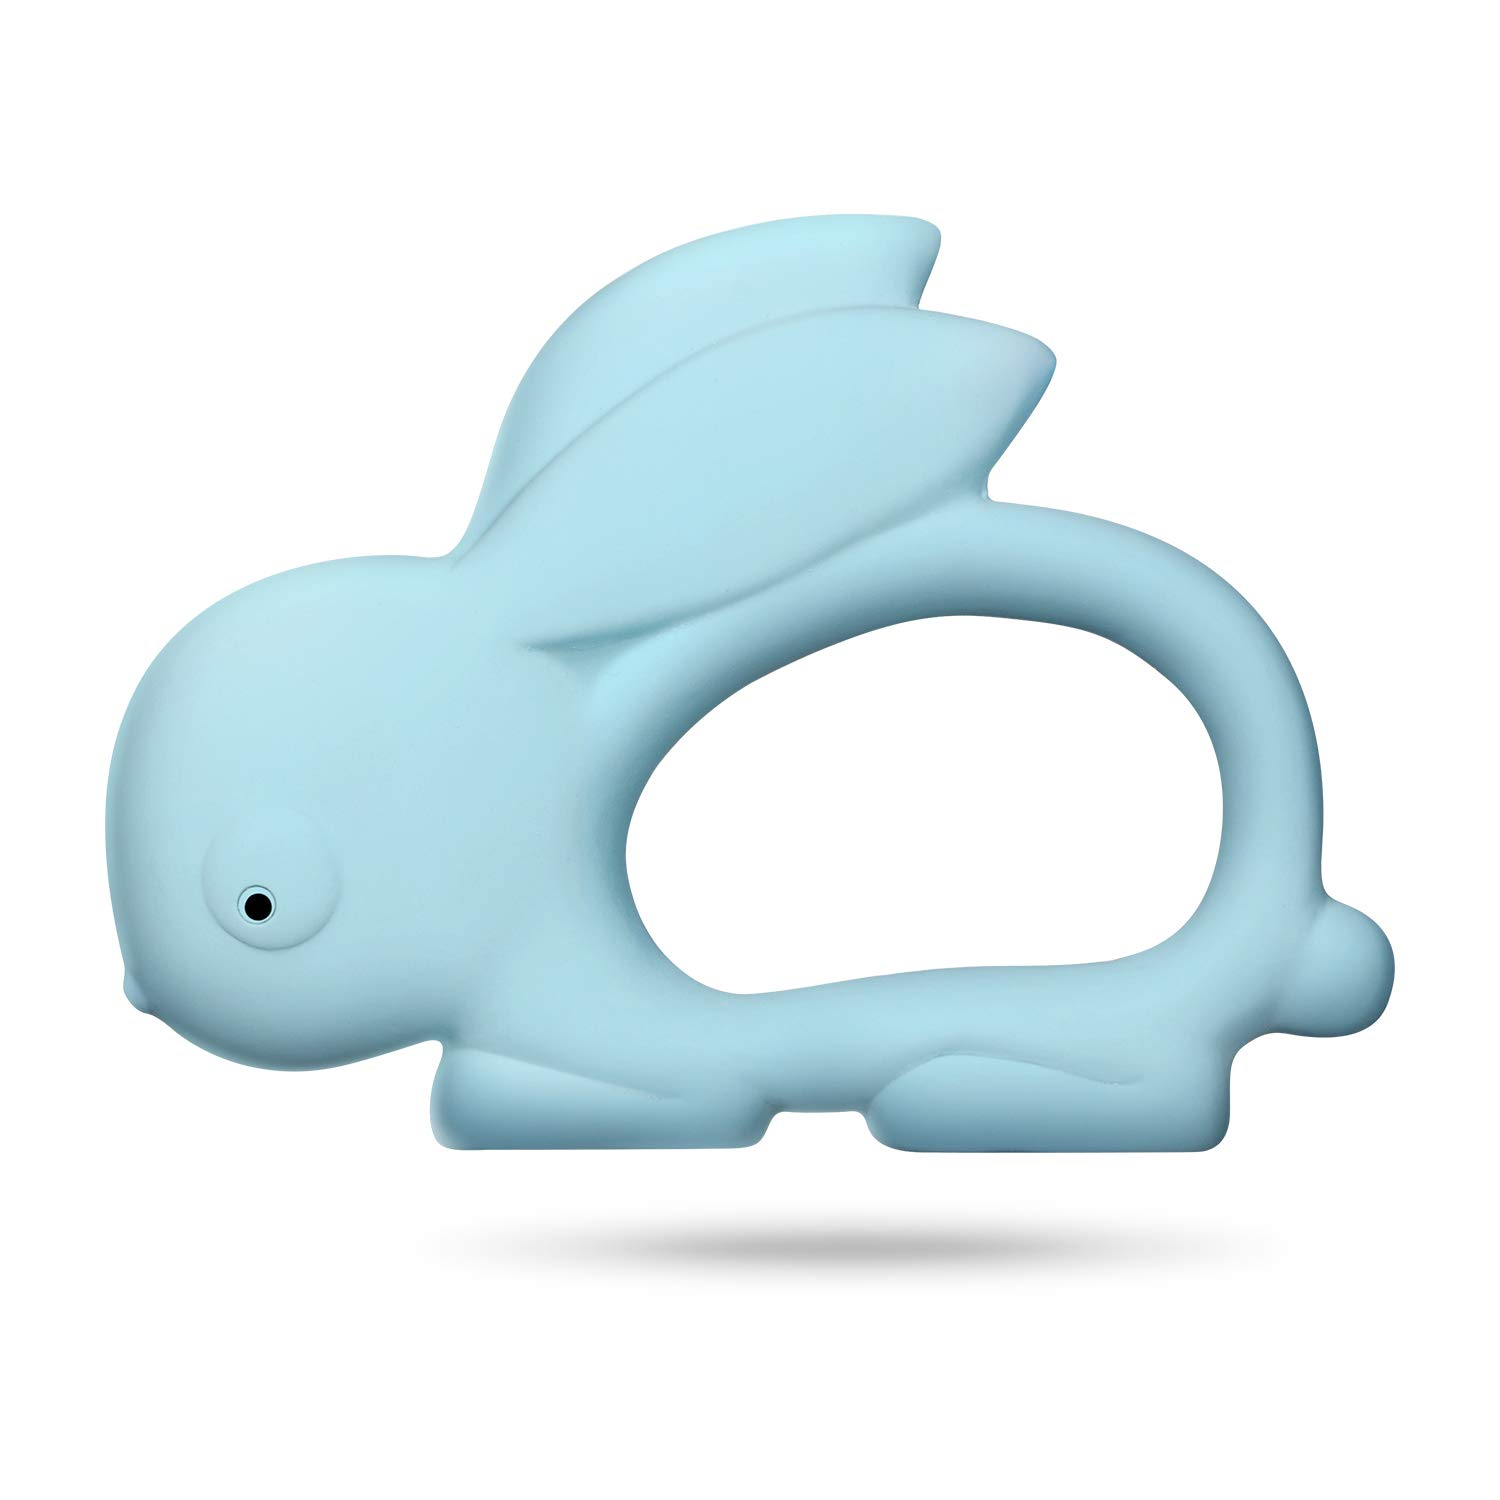 CALLMYBO Rabbit Teether Teething Toy for Baby, Silicon Free 100% Natural Rubber Baby Teether Multi-Textured Soft & Soothing Easy-Hold, Lovely Gift for Babies (BPA Free, Freezer & Dishwasher Safe).